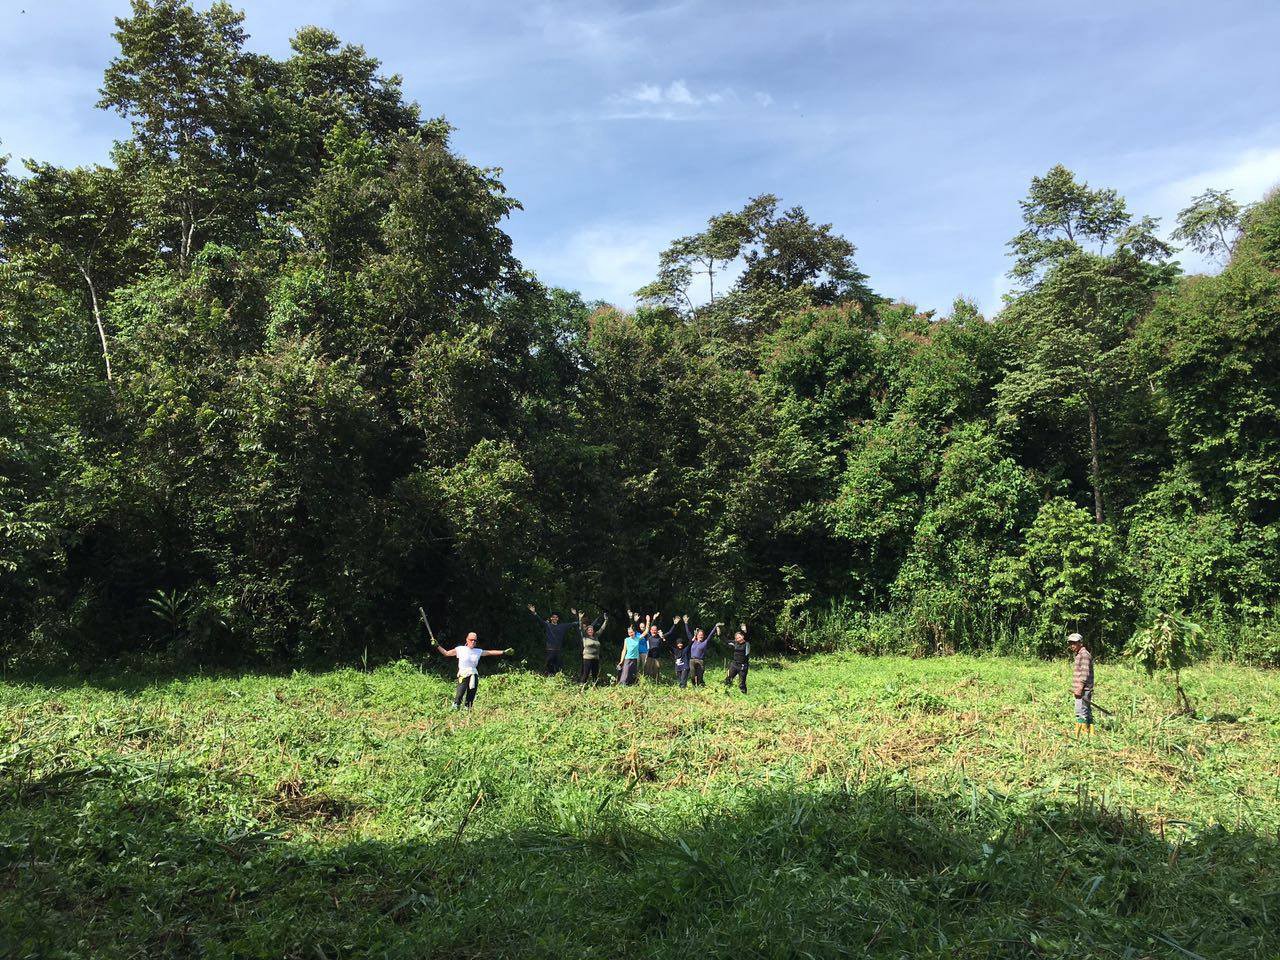 Clearing vegetation in Borneo